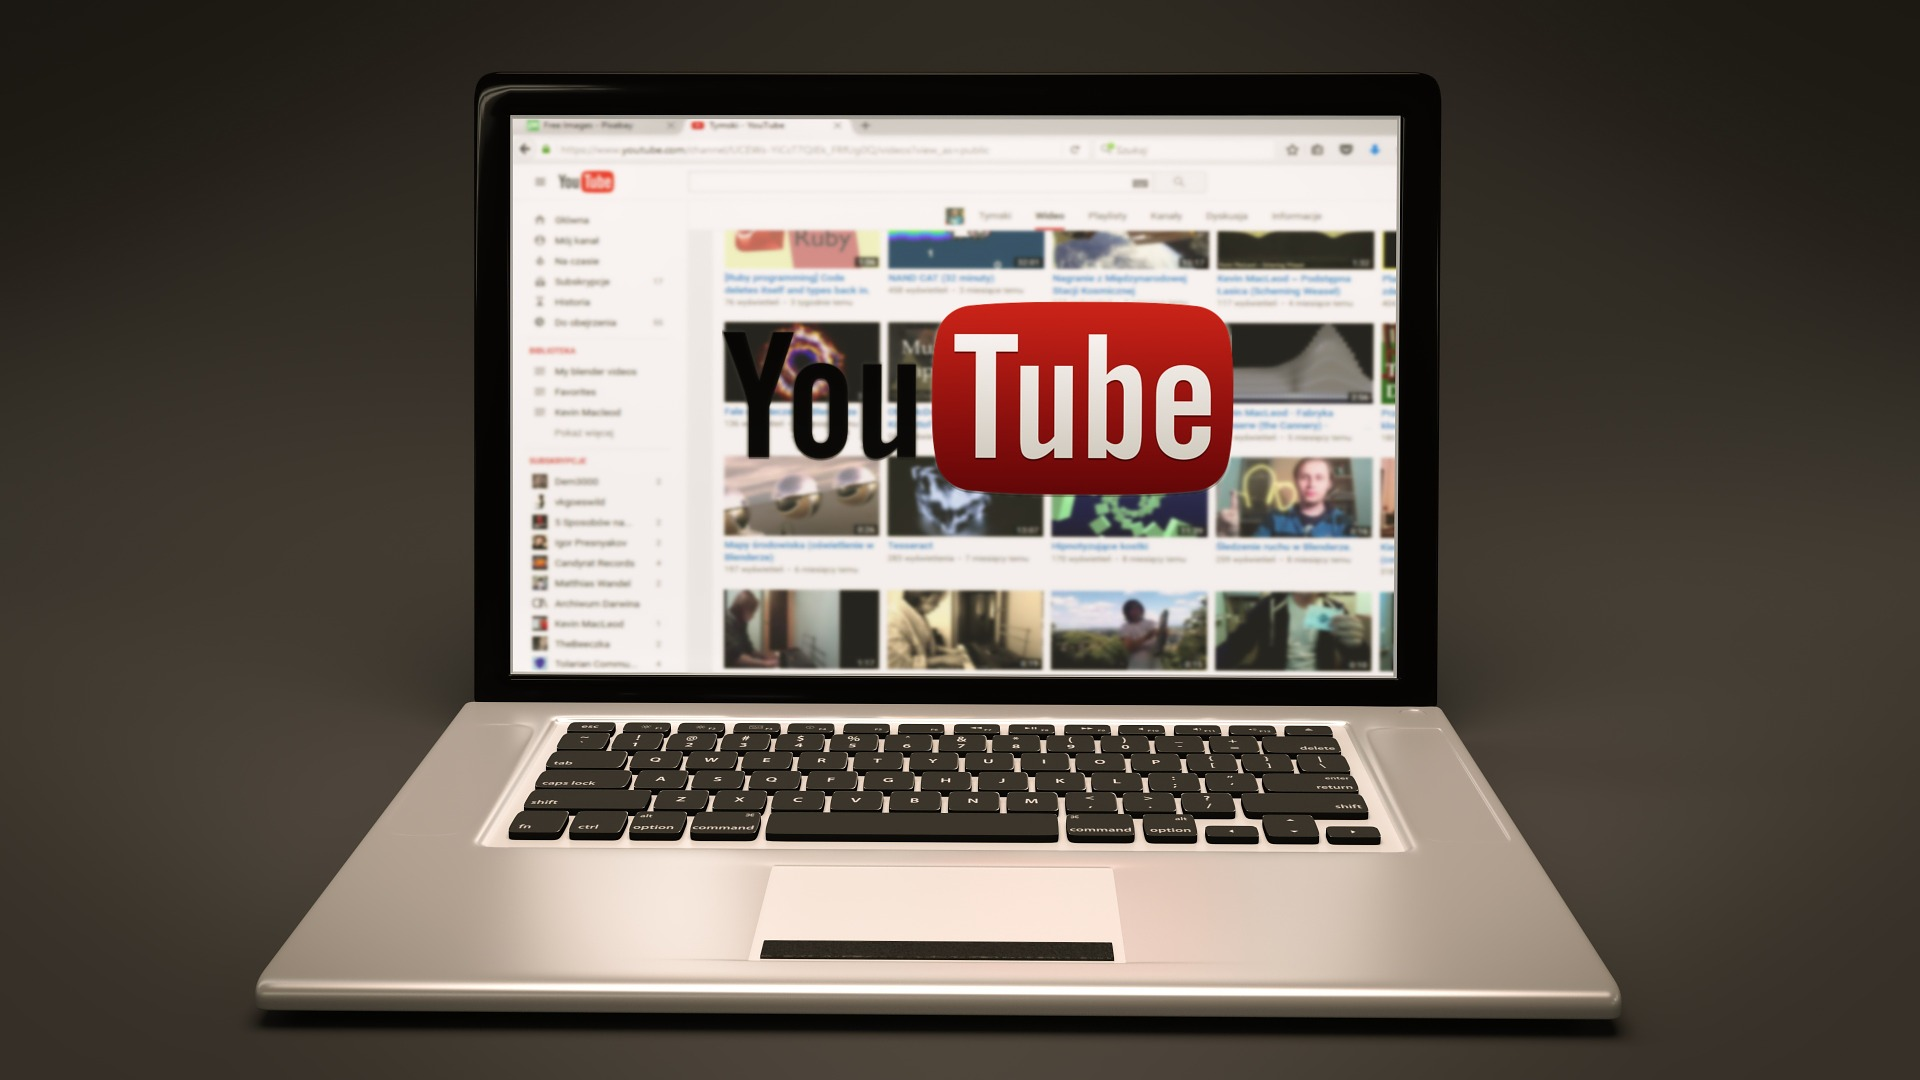 A laptop with youtube on the screen.